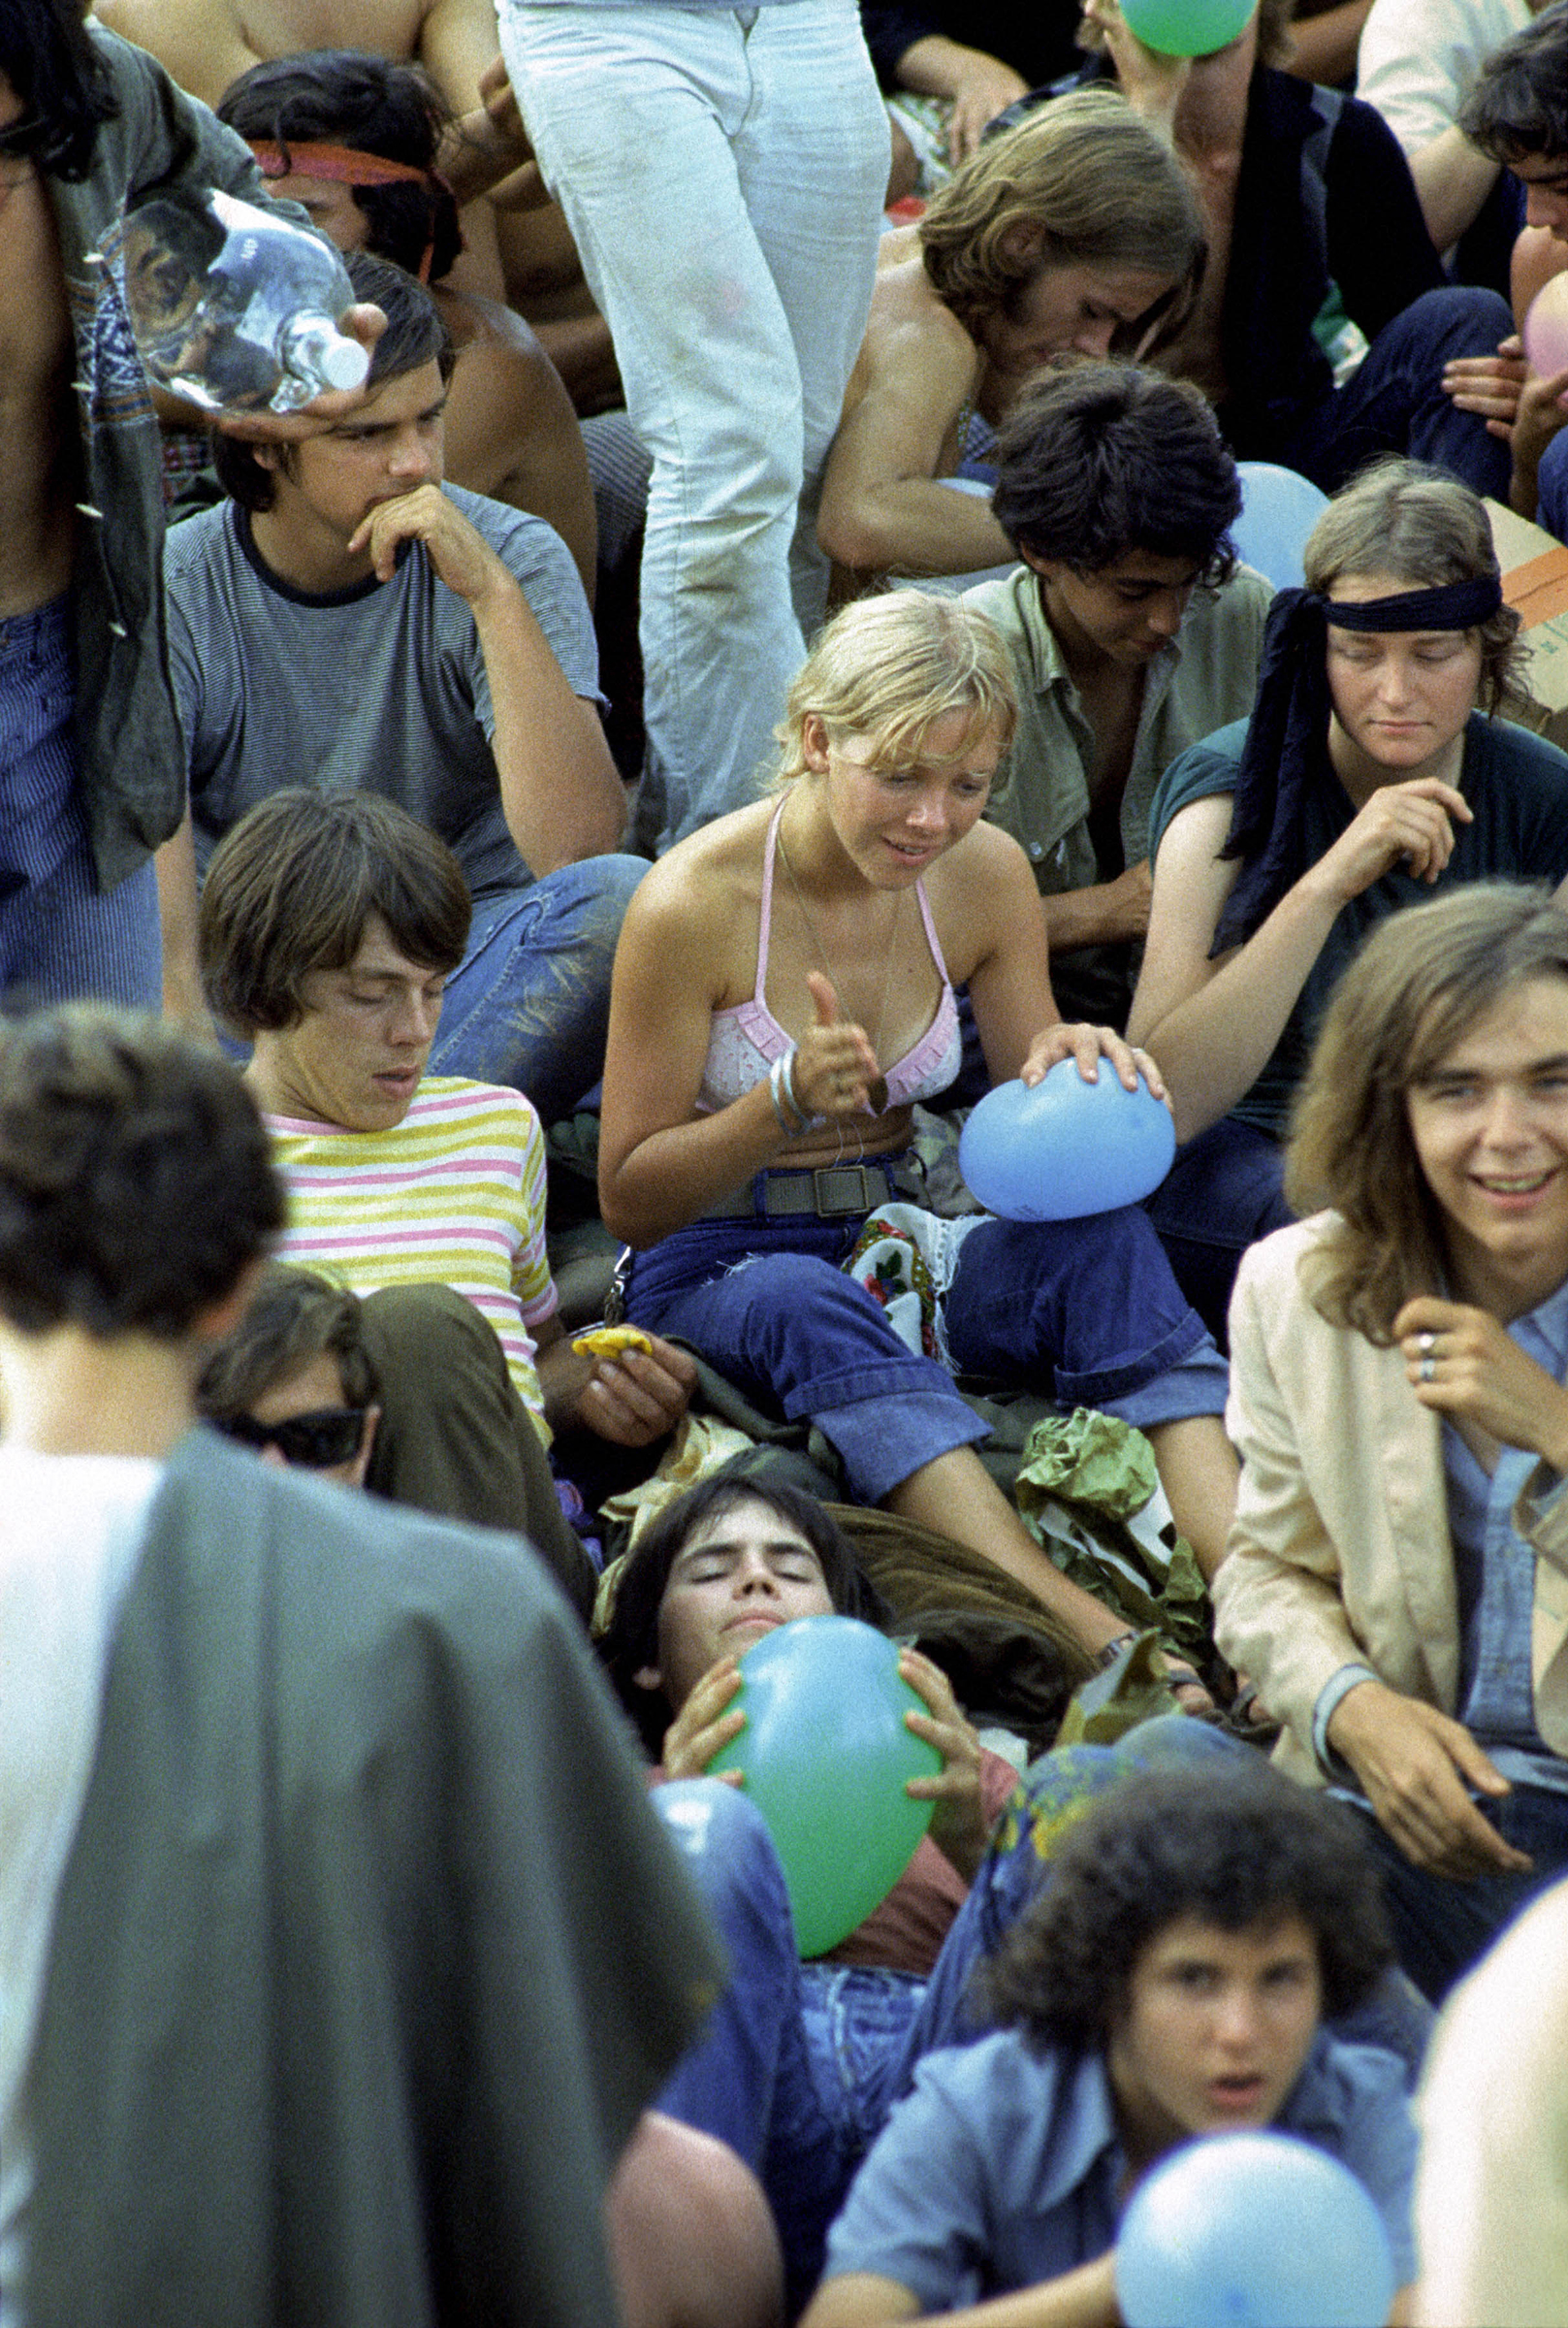 The crowd at Woodstock, in 1969.